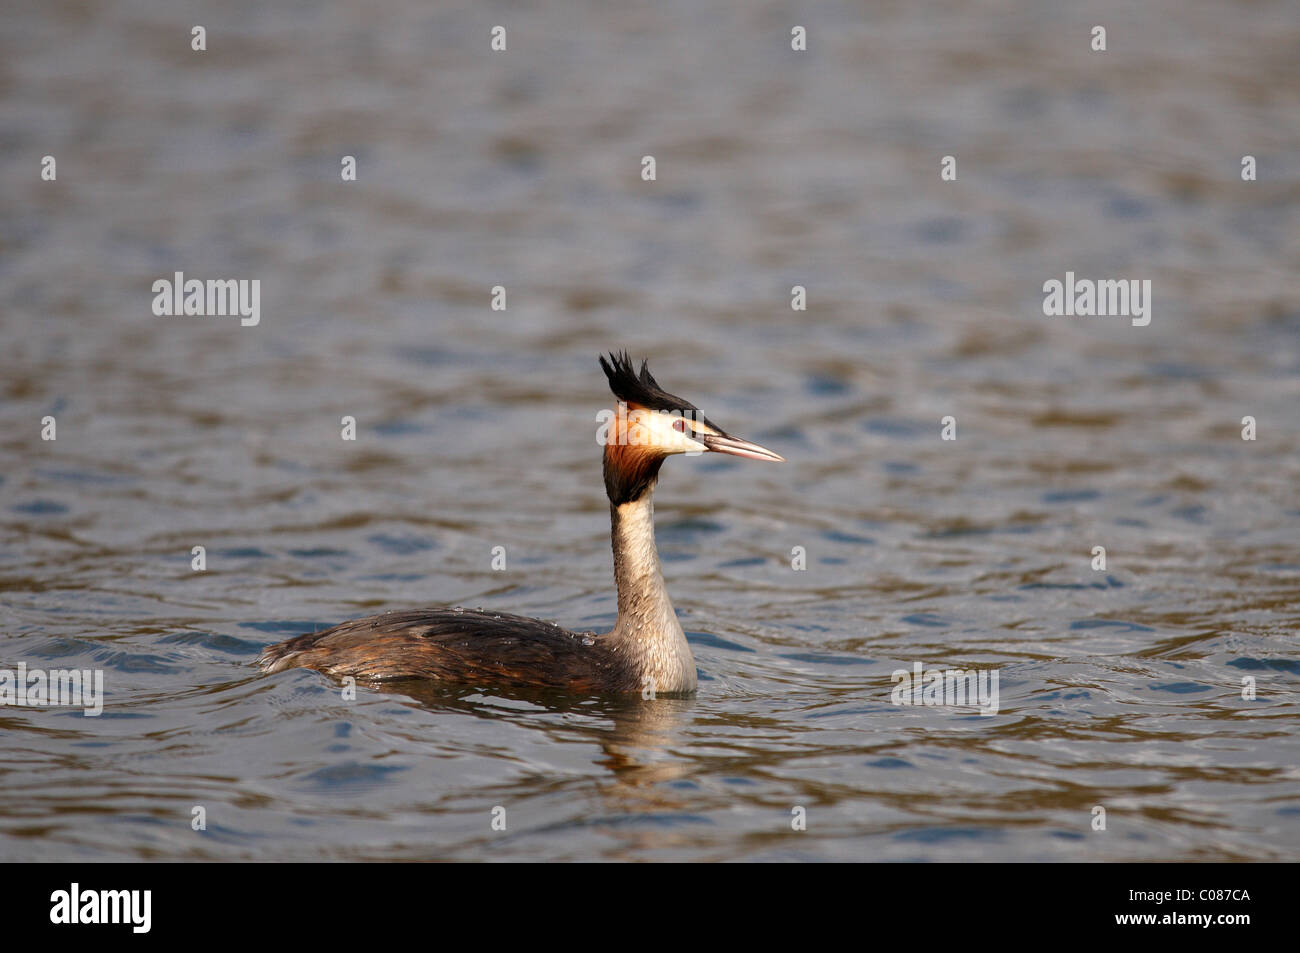 Great crested grebe (Podiceps Cristatus) swimming on a Lake - Stock Image